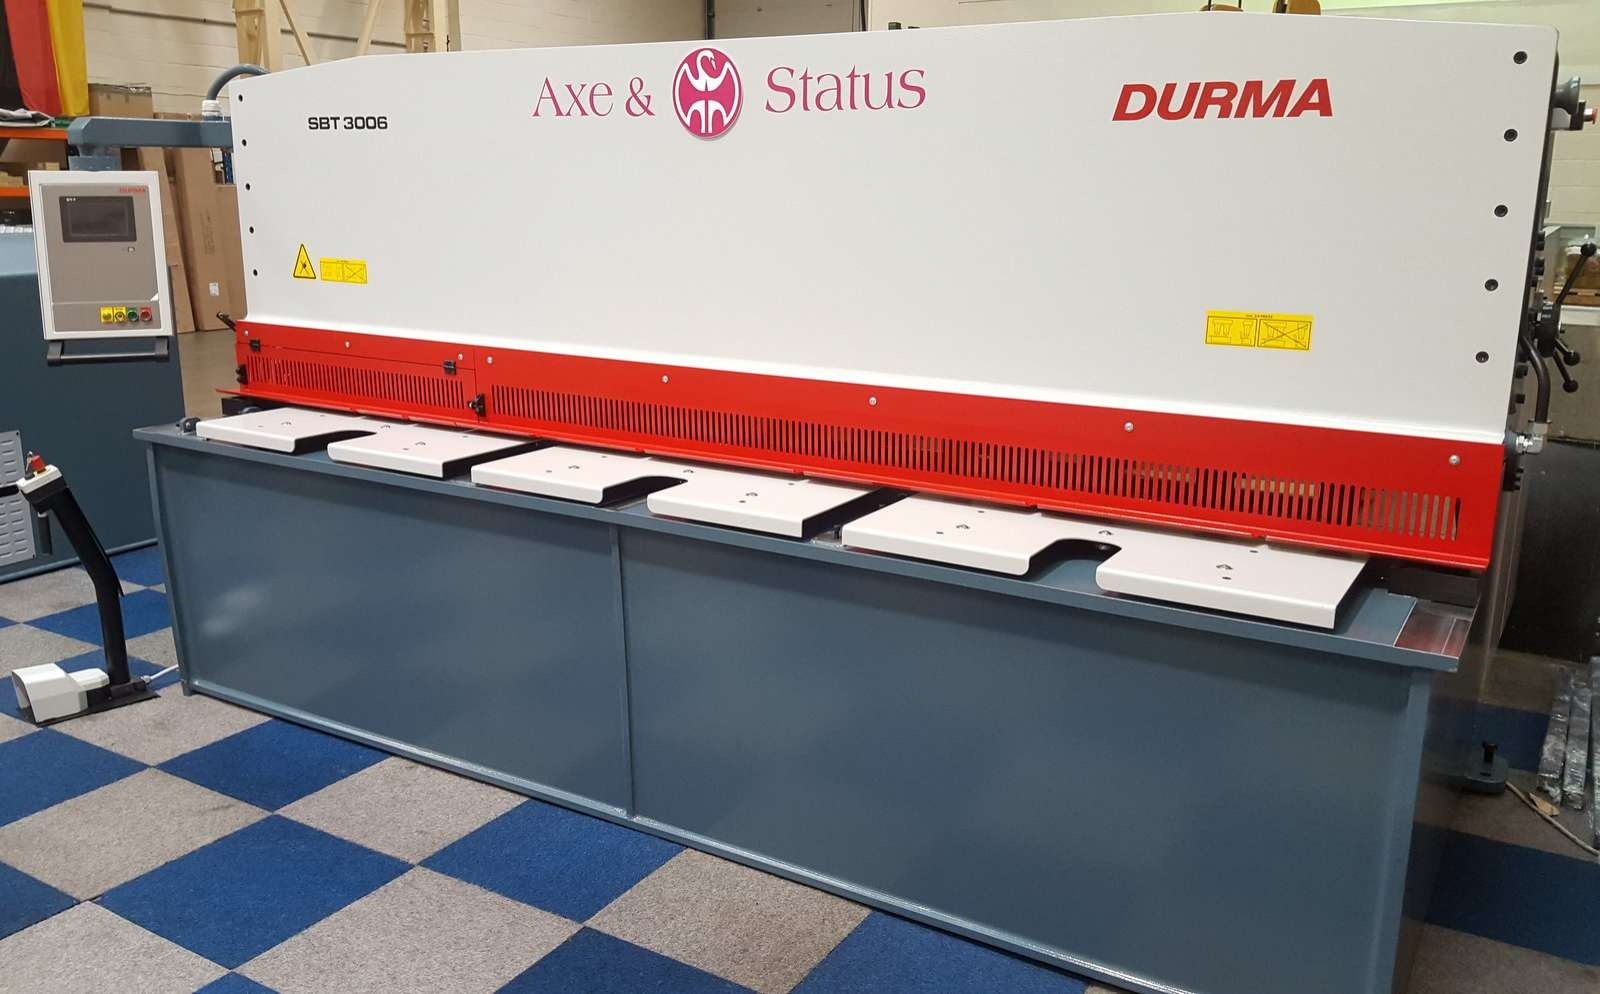 DURMA SBT 3006 HYDRAULIC SWING BEAM GUILLOTINE special offer